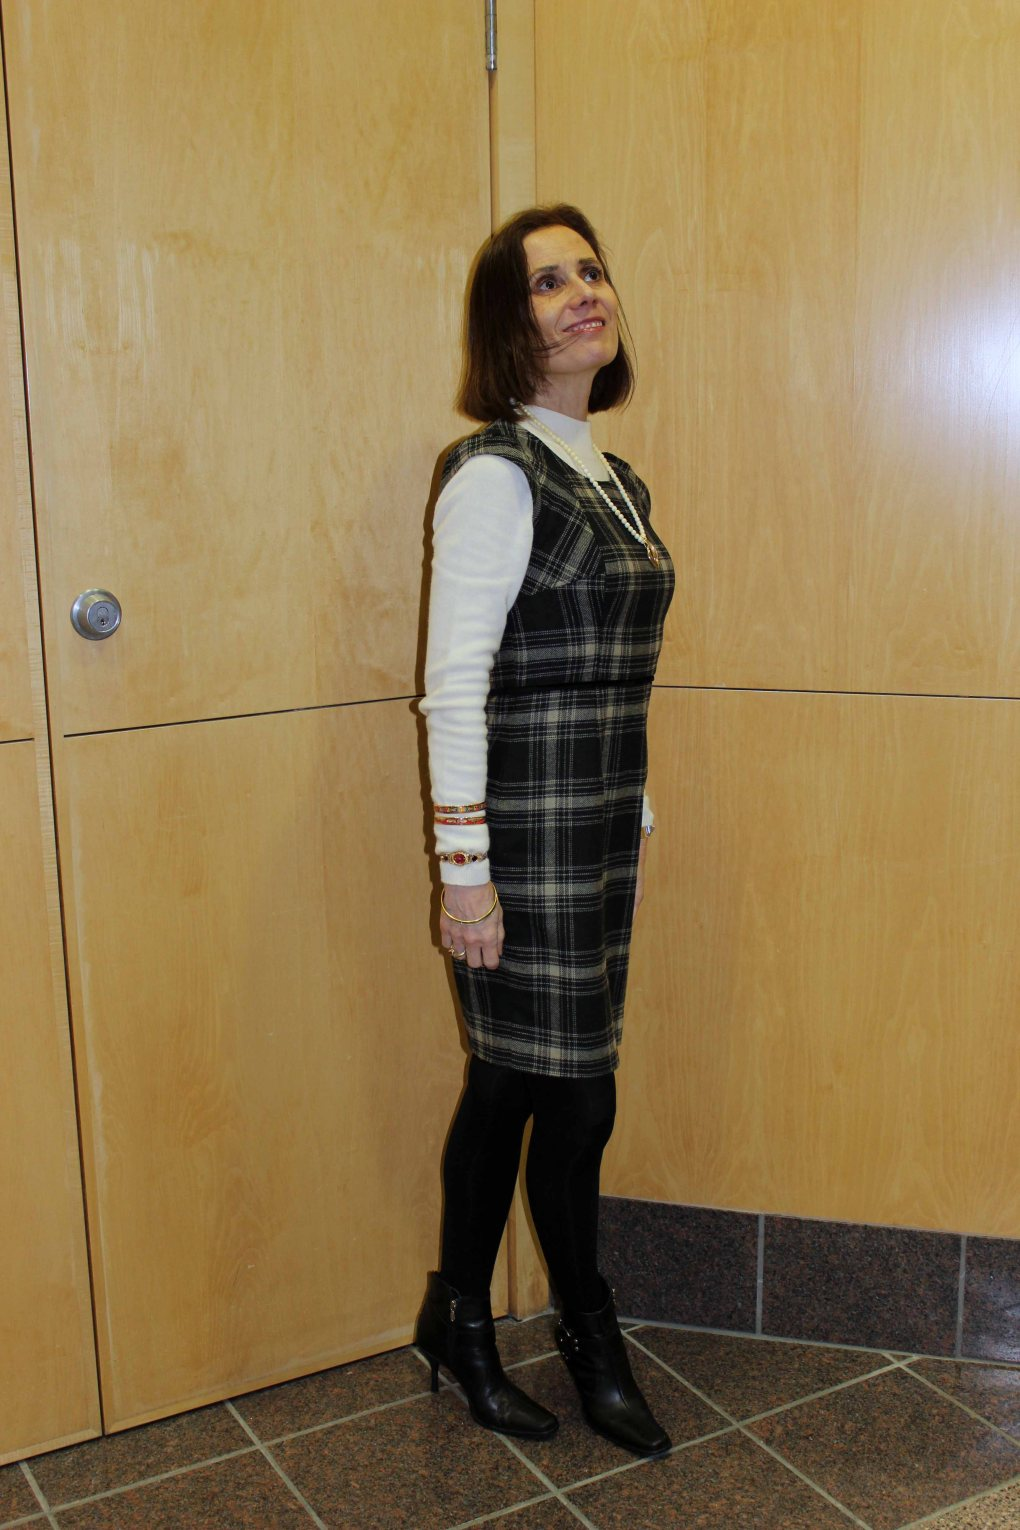 fashionover40 woman in an office outfit